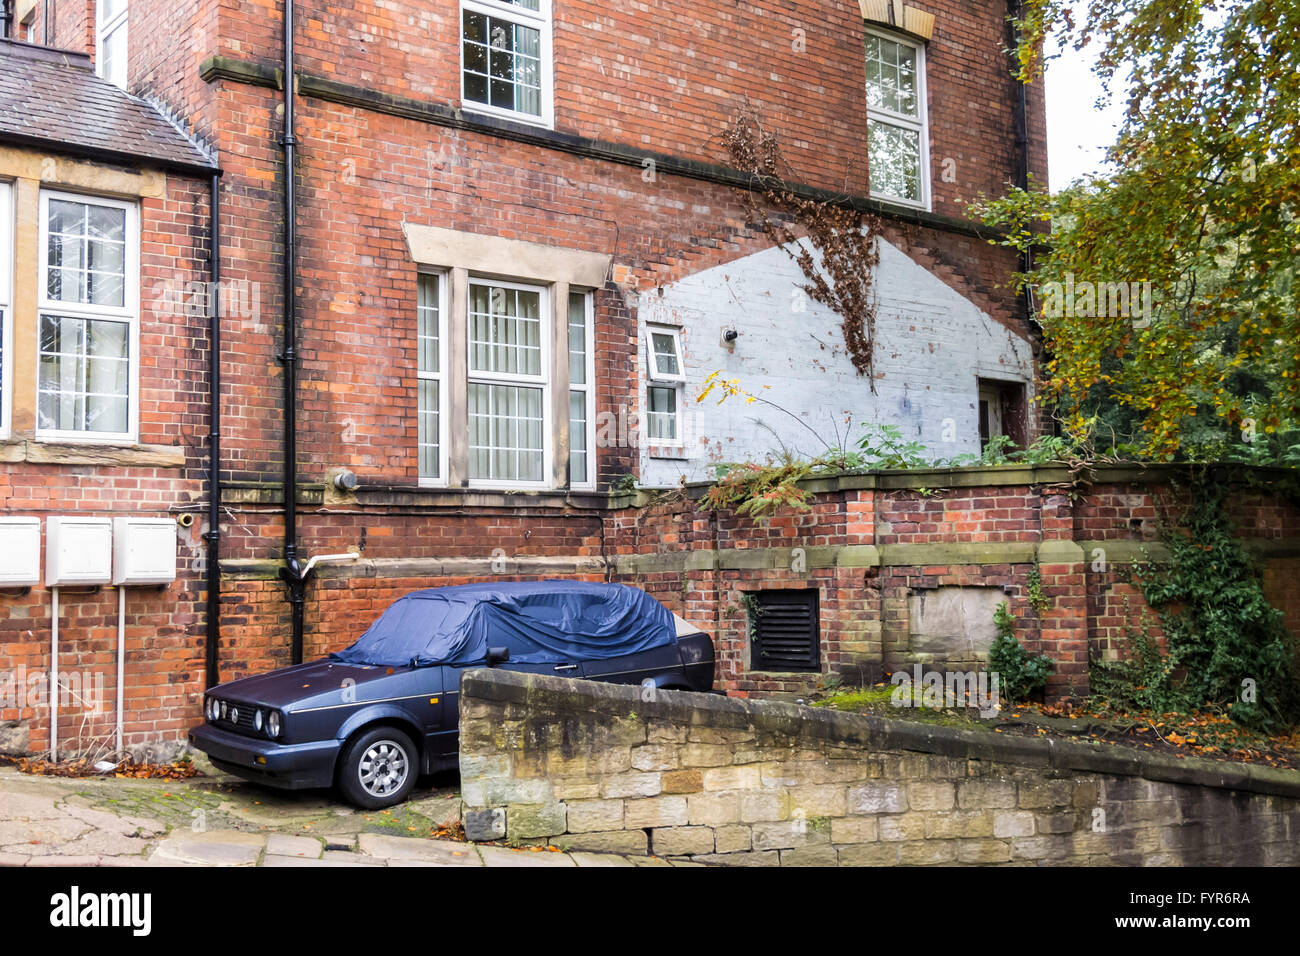 A blue VW Golf MK2 convertible hatchback car with a cover over it, parked next an old run down house in Durham City, - Stock Image